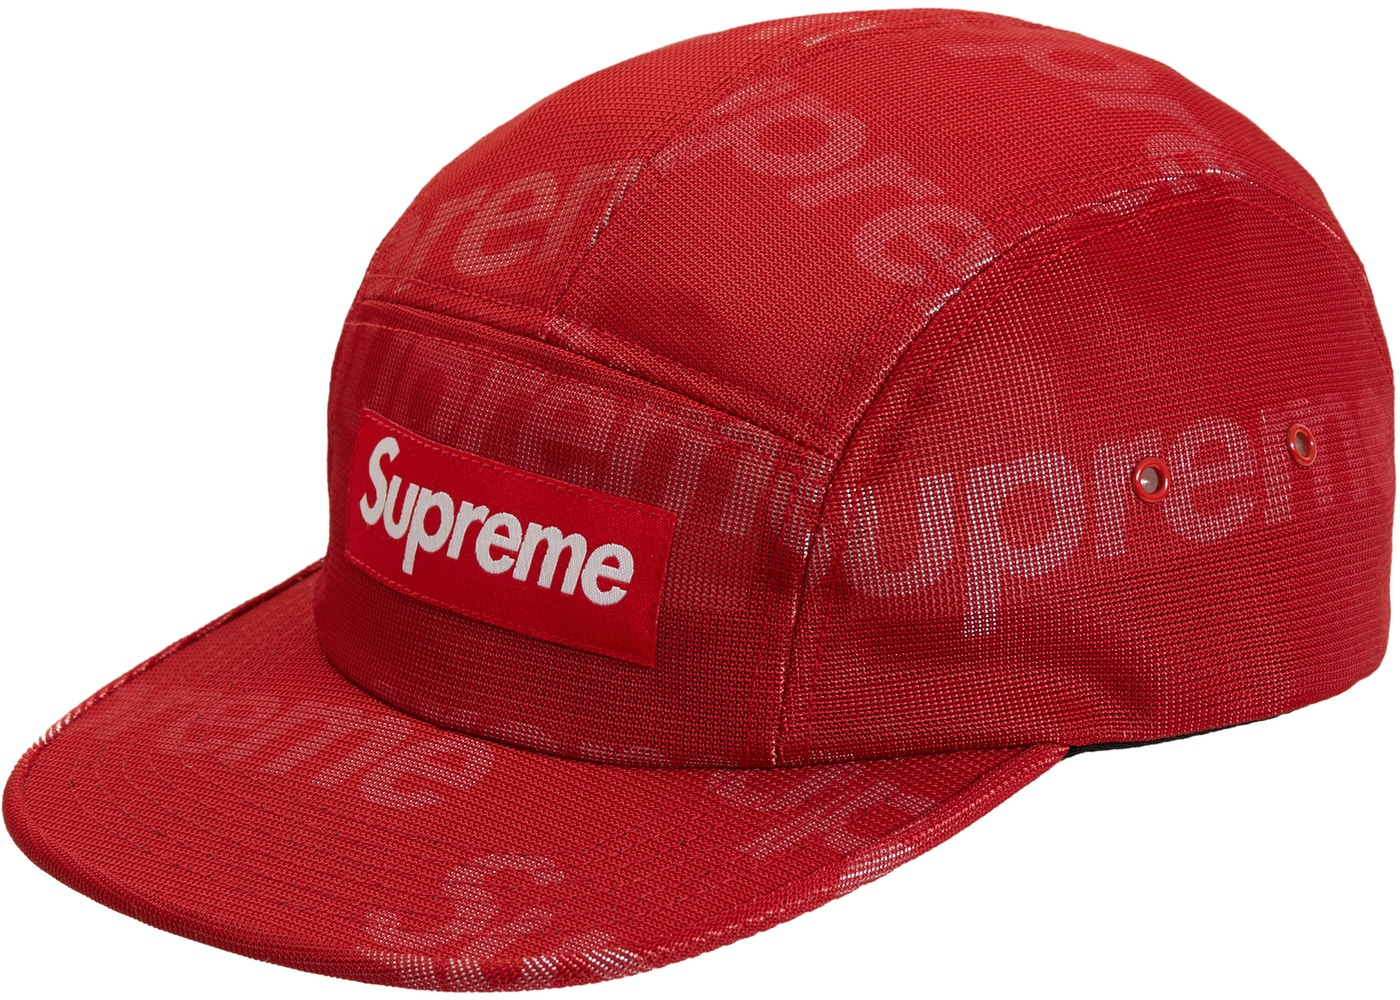 b750bfec6d9 Supreme Headwear - Buy   Sell Streetwear